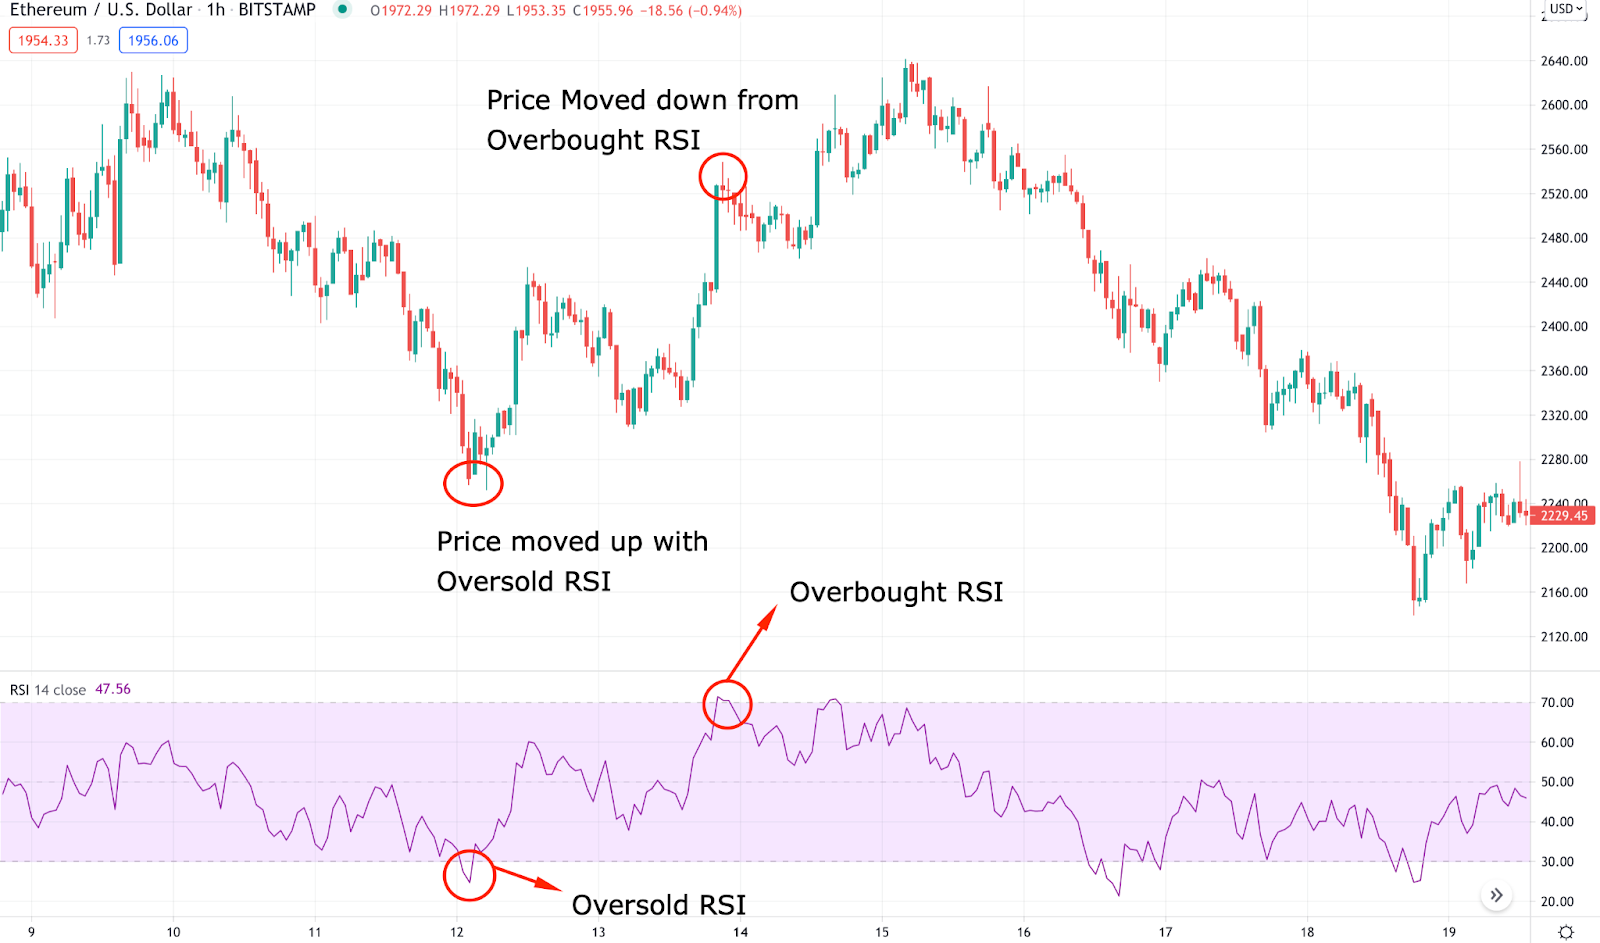 RSI indicator showing the overbought and oversold levels.